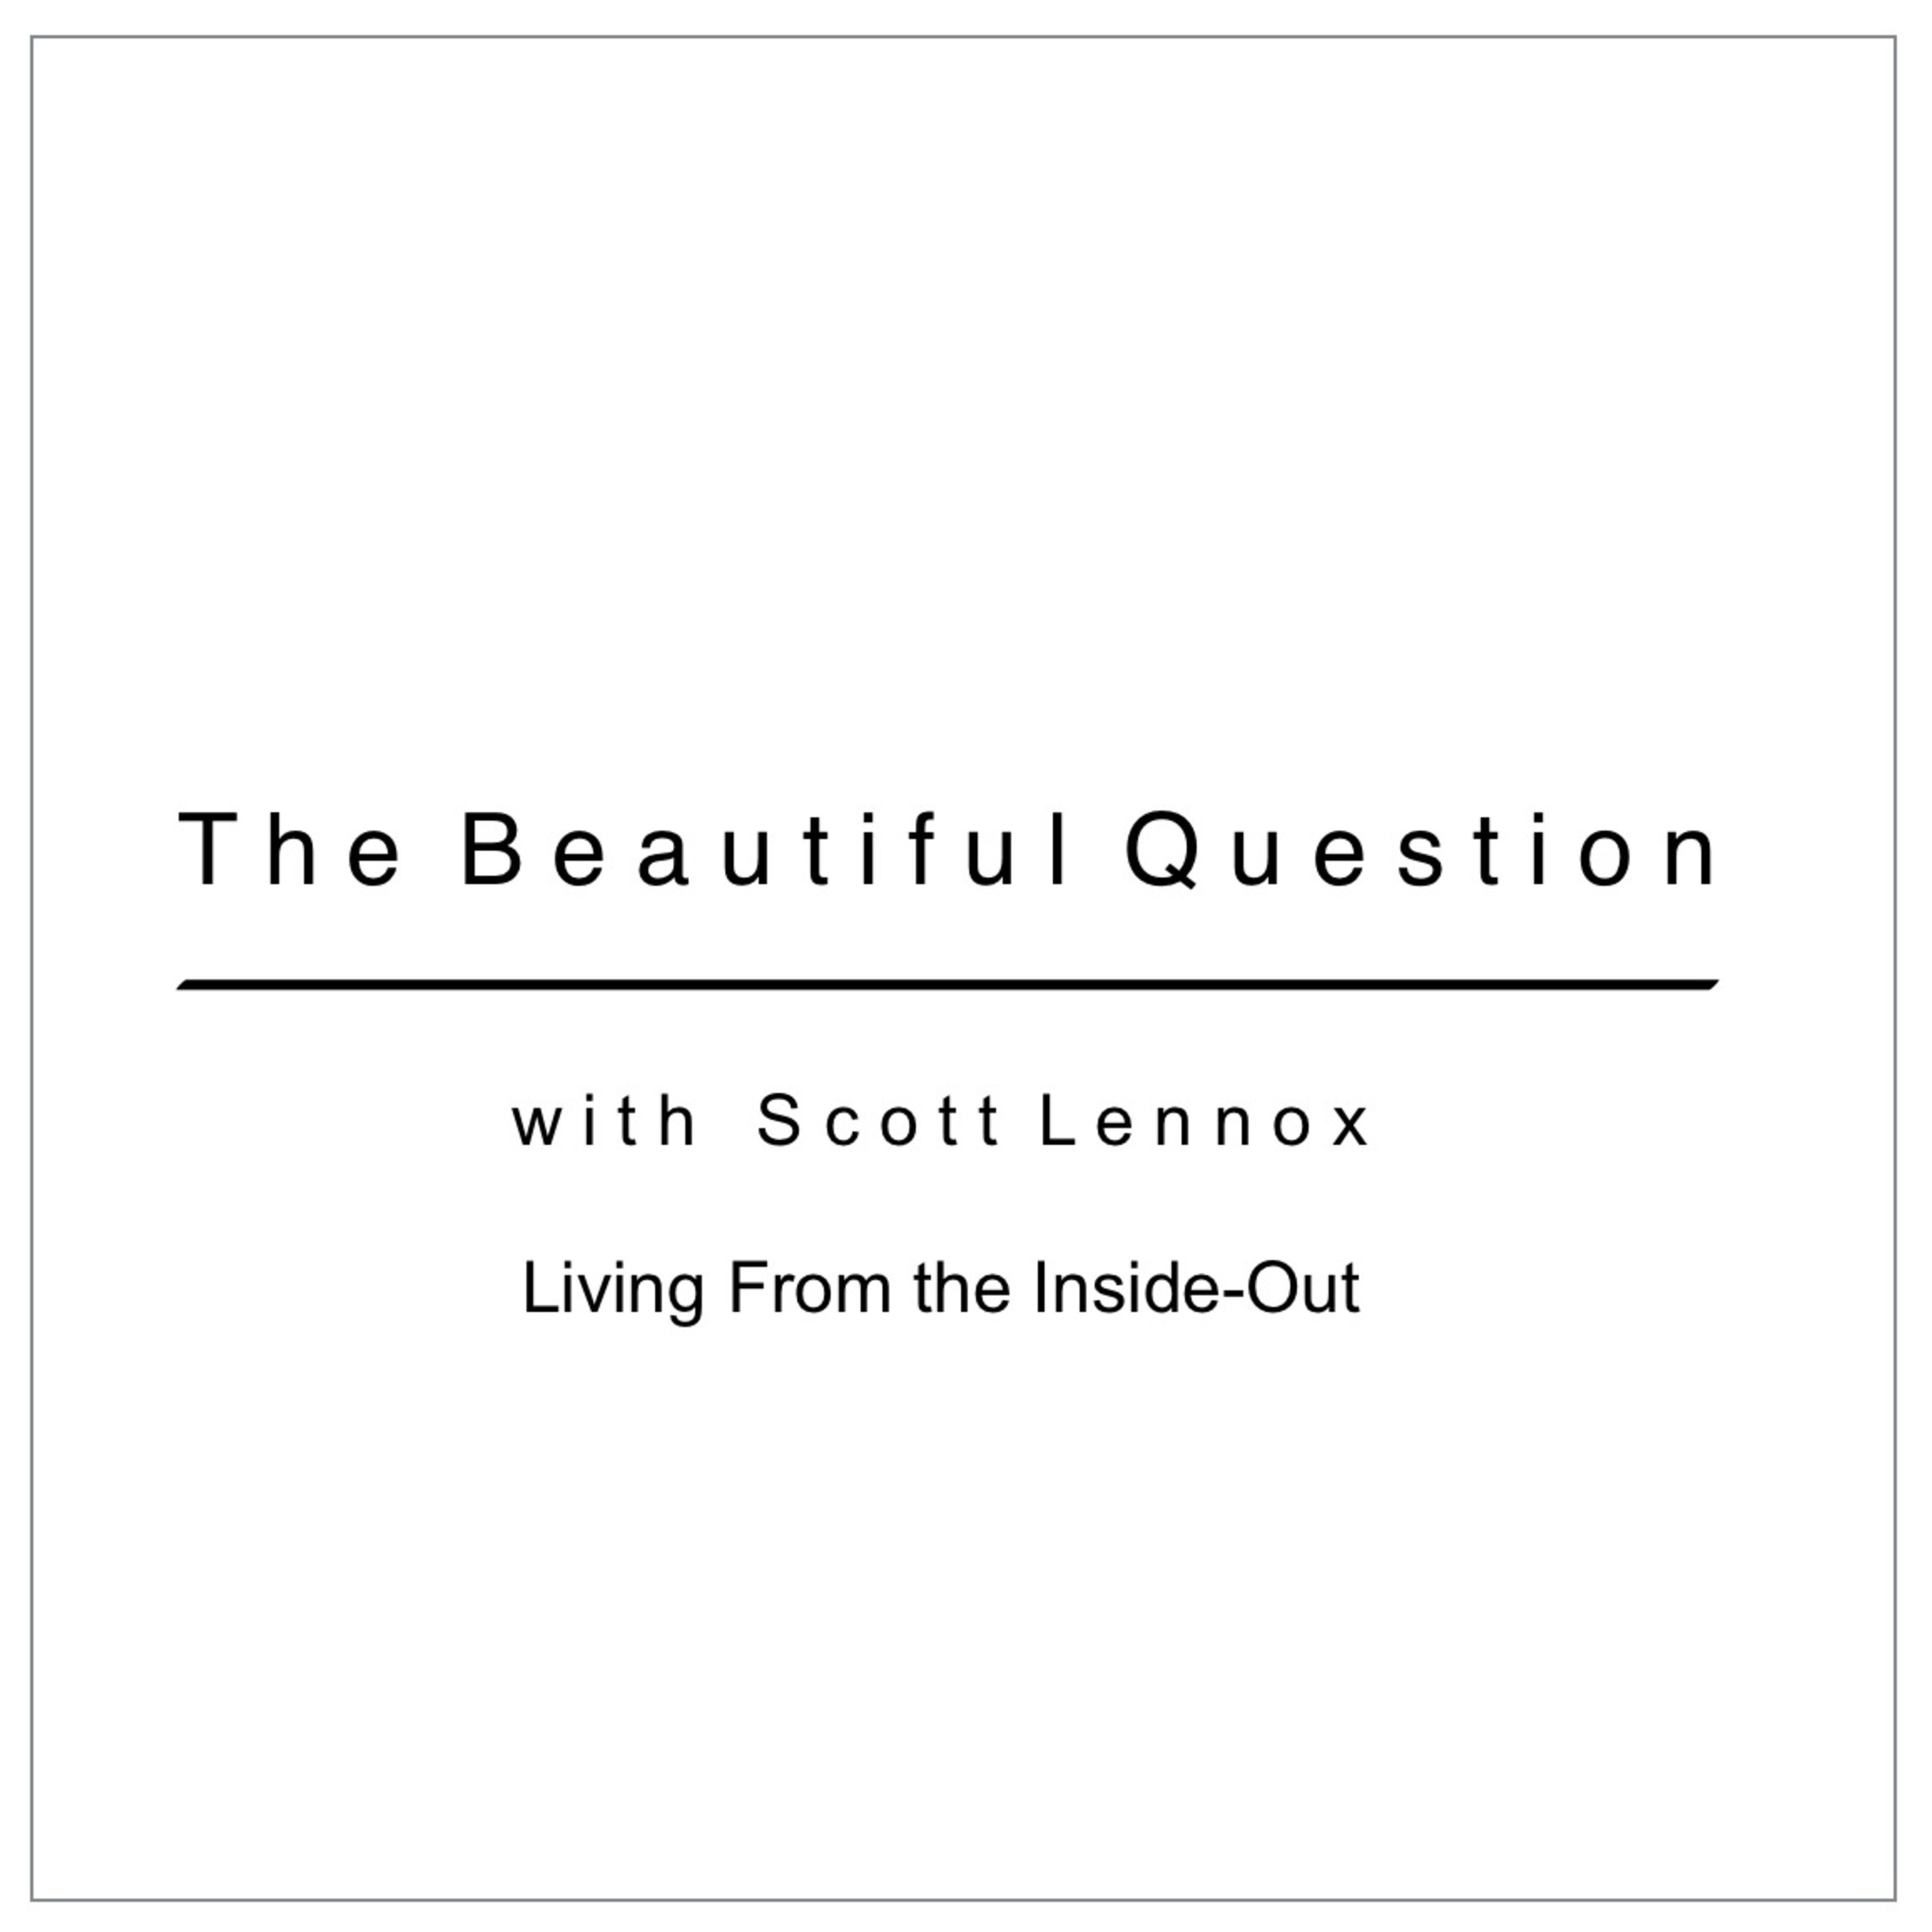 Living From the Inside-Out